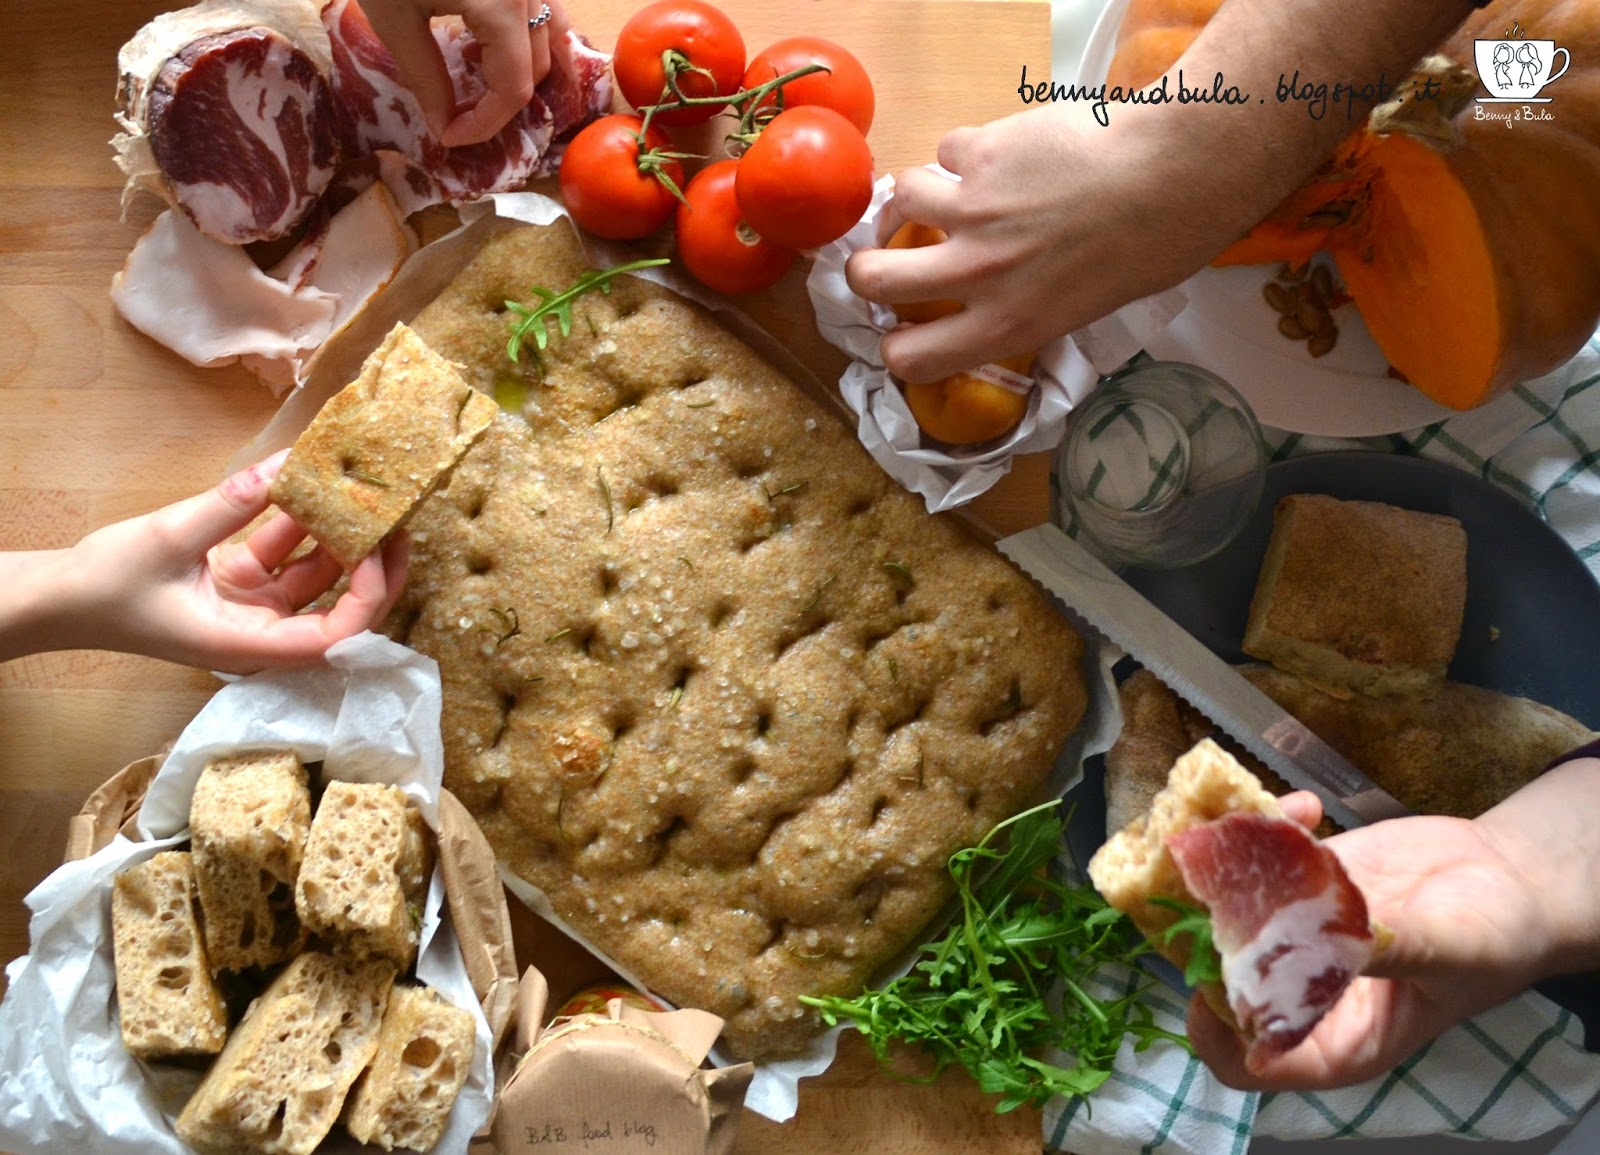 ricetta focaccia semi integrale alta e soffice a lievitazione naturale, con lievito madre liquido o licoli/ soft pizza recipe whole wheat and wild yeast or liquid starter